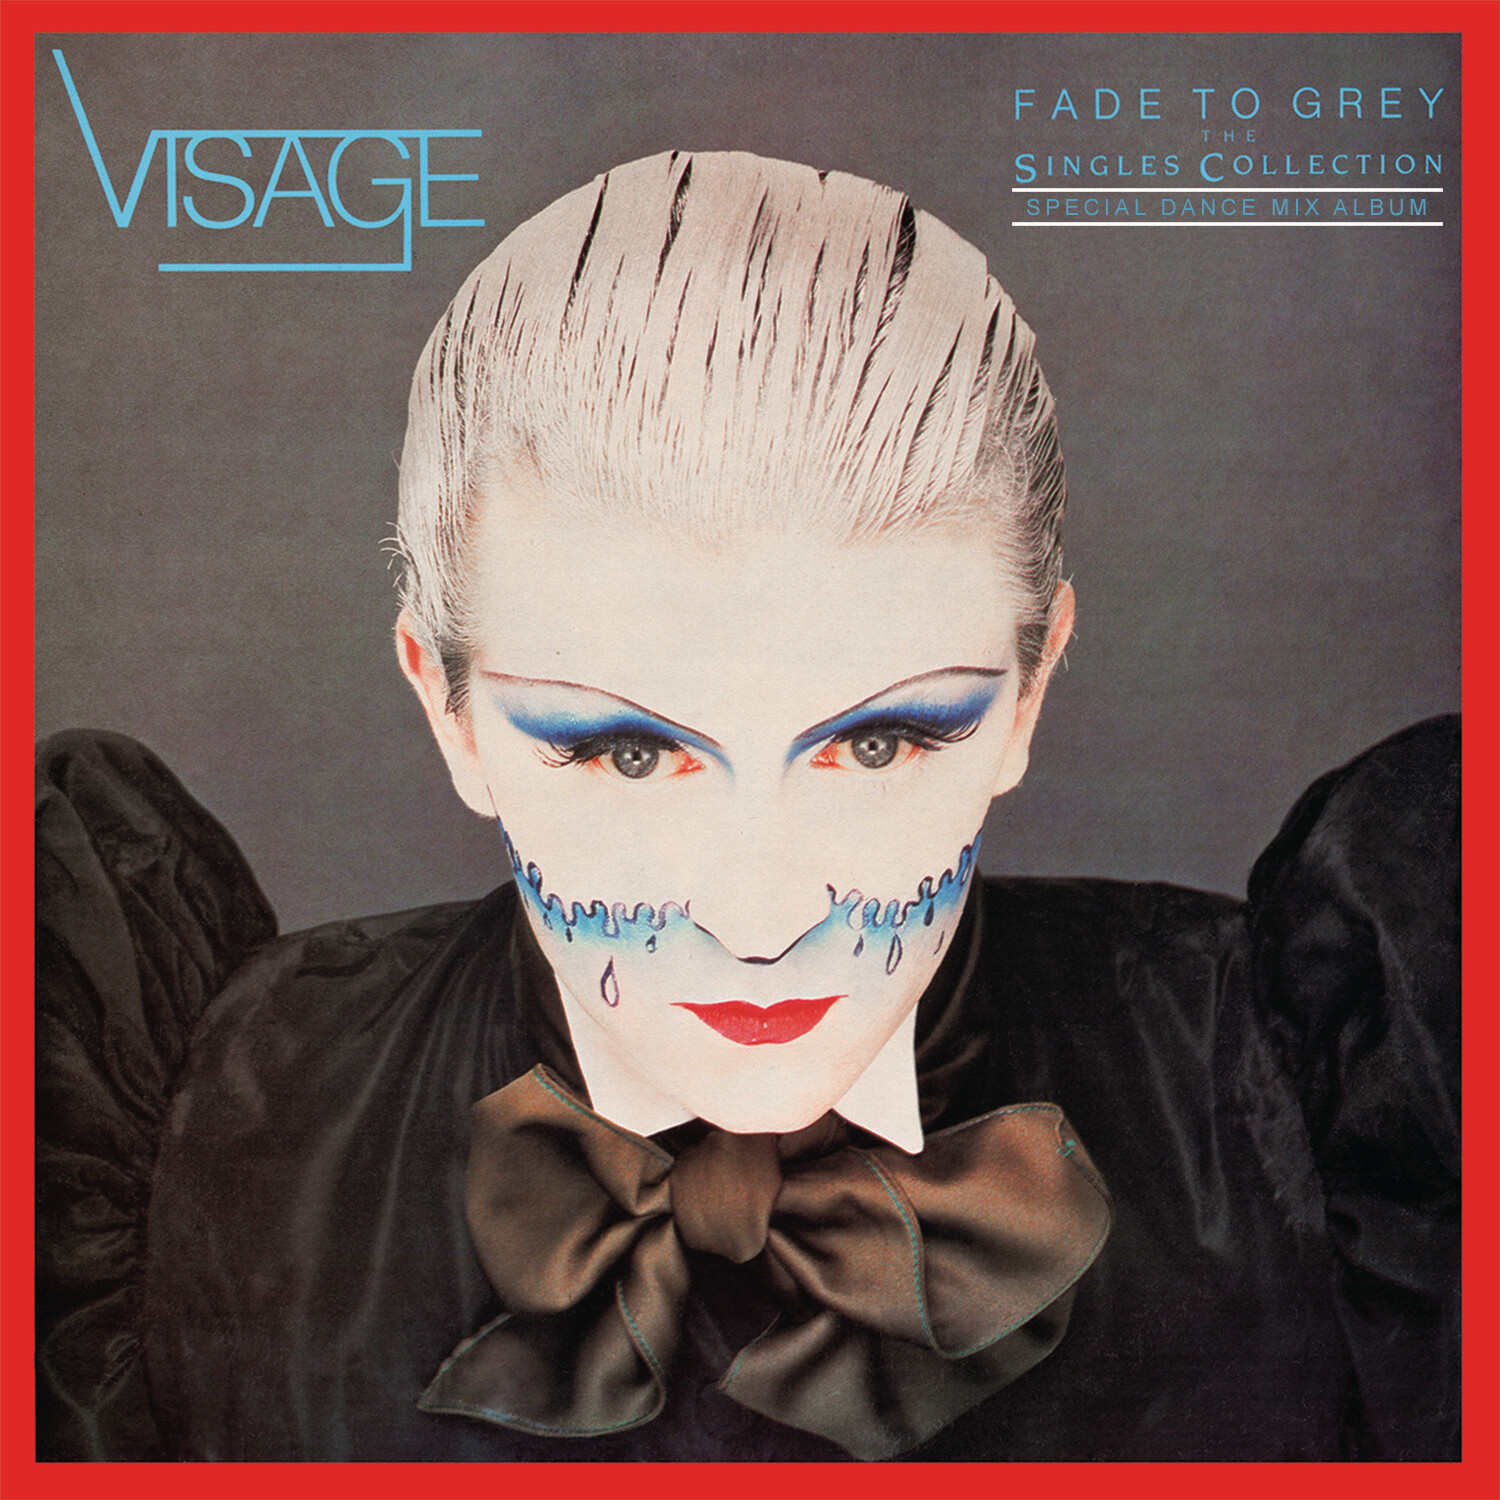 Visage / Fade To Grey: Special Dance Mix Album CD